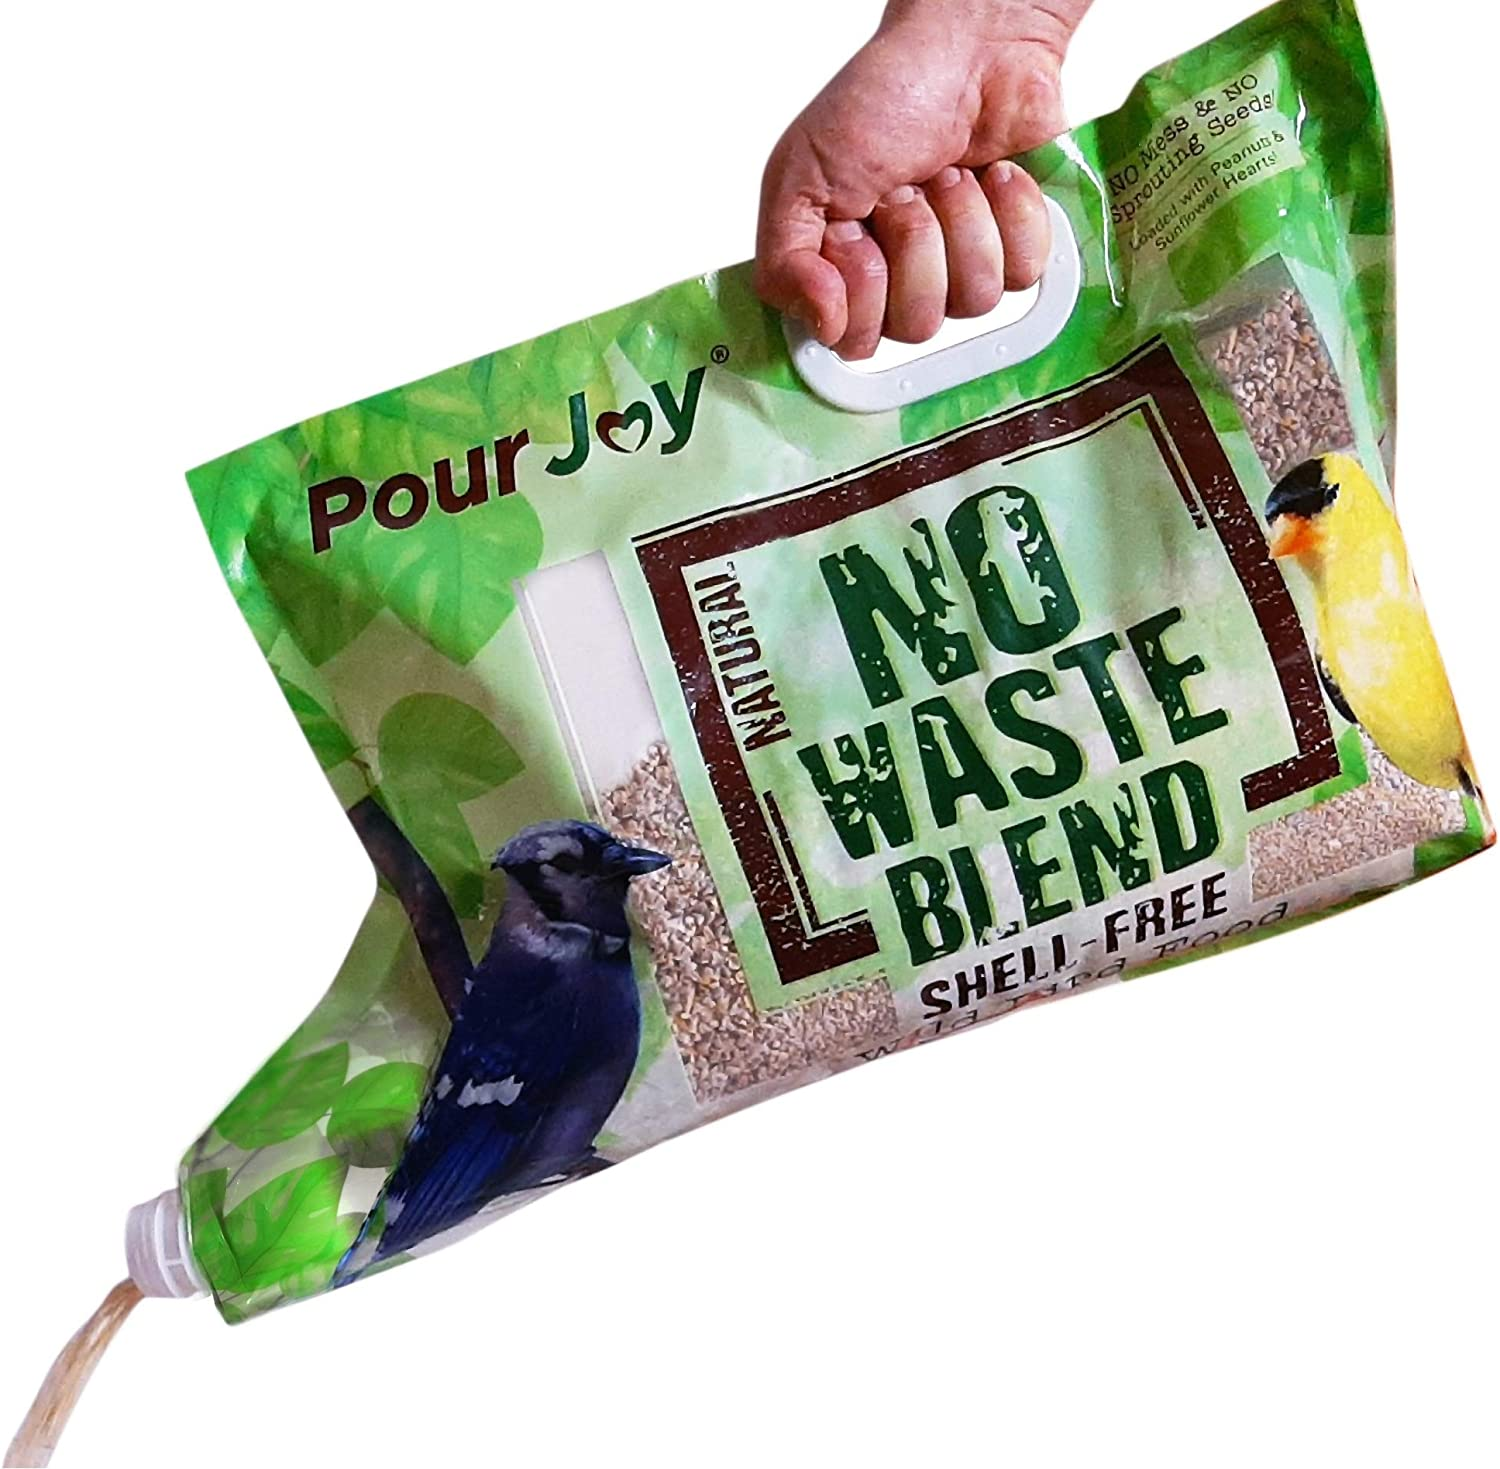 Pour Joy No Mess, No Waste, Shell-Free Blend, 10 lb Bag with Built-in Spout Allows You to Fill Feeders Quickly & Easily Without Scooping, No Spilling Wild Bird Seed, Premium Bird Food (1)